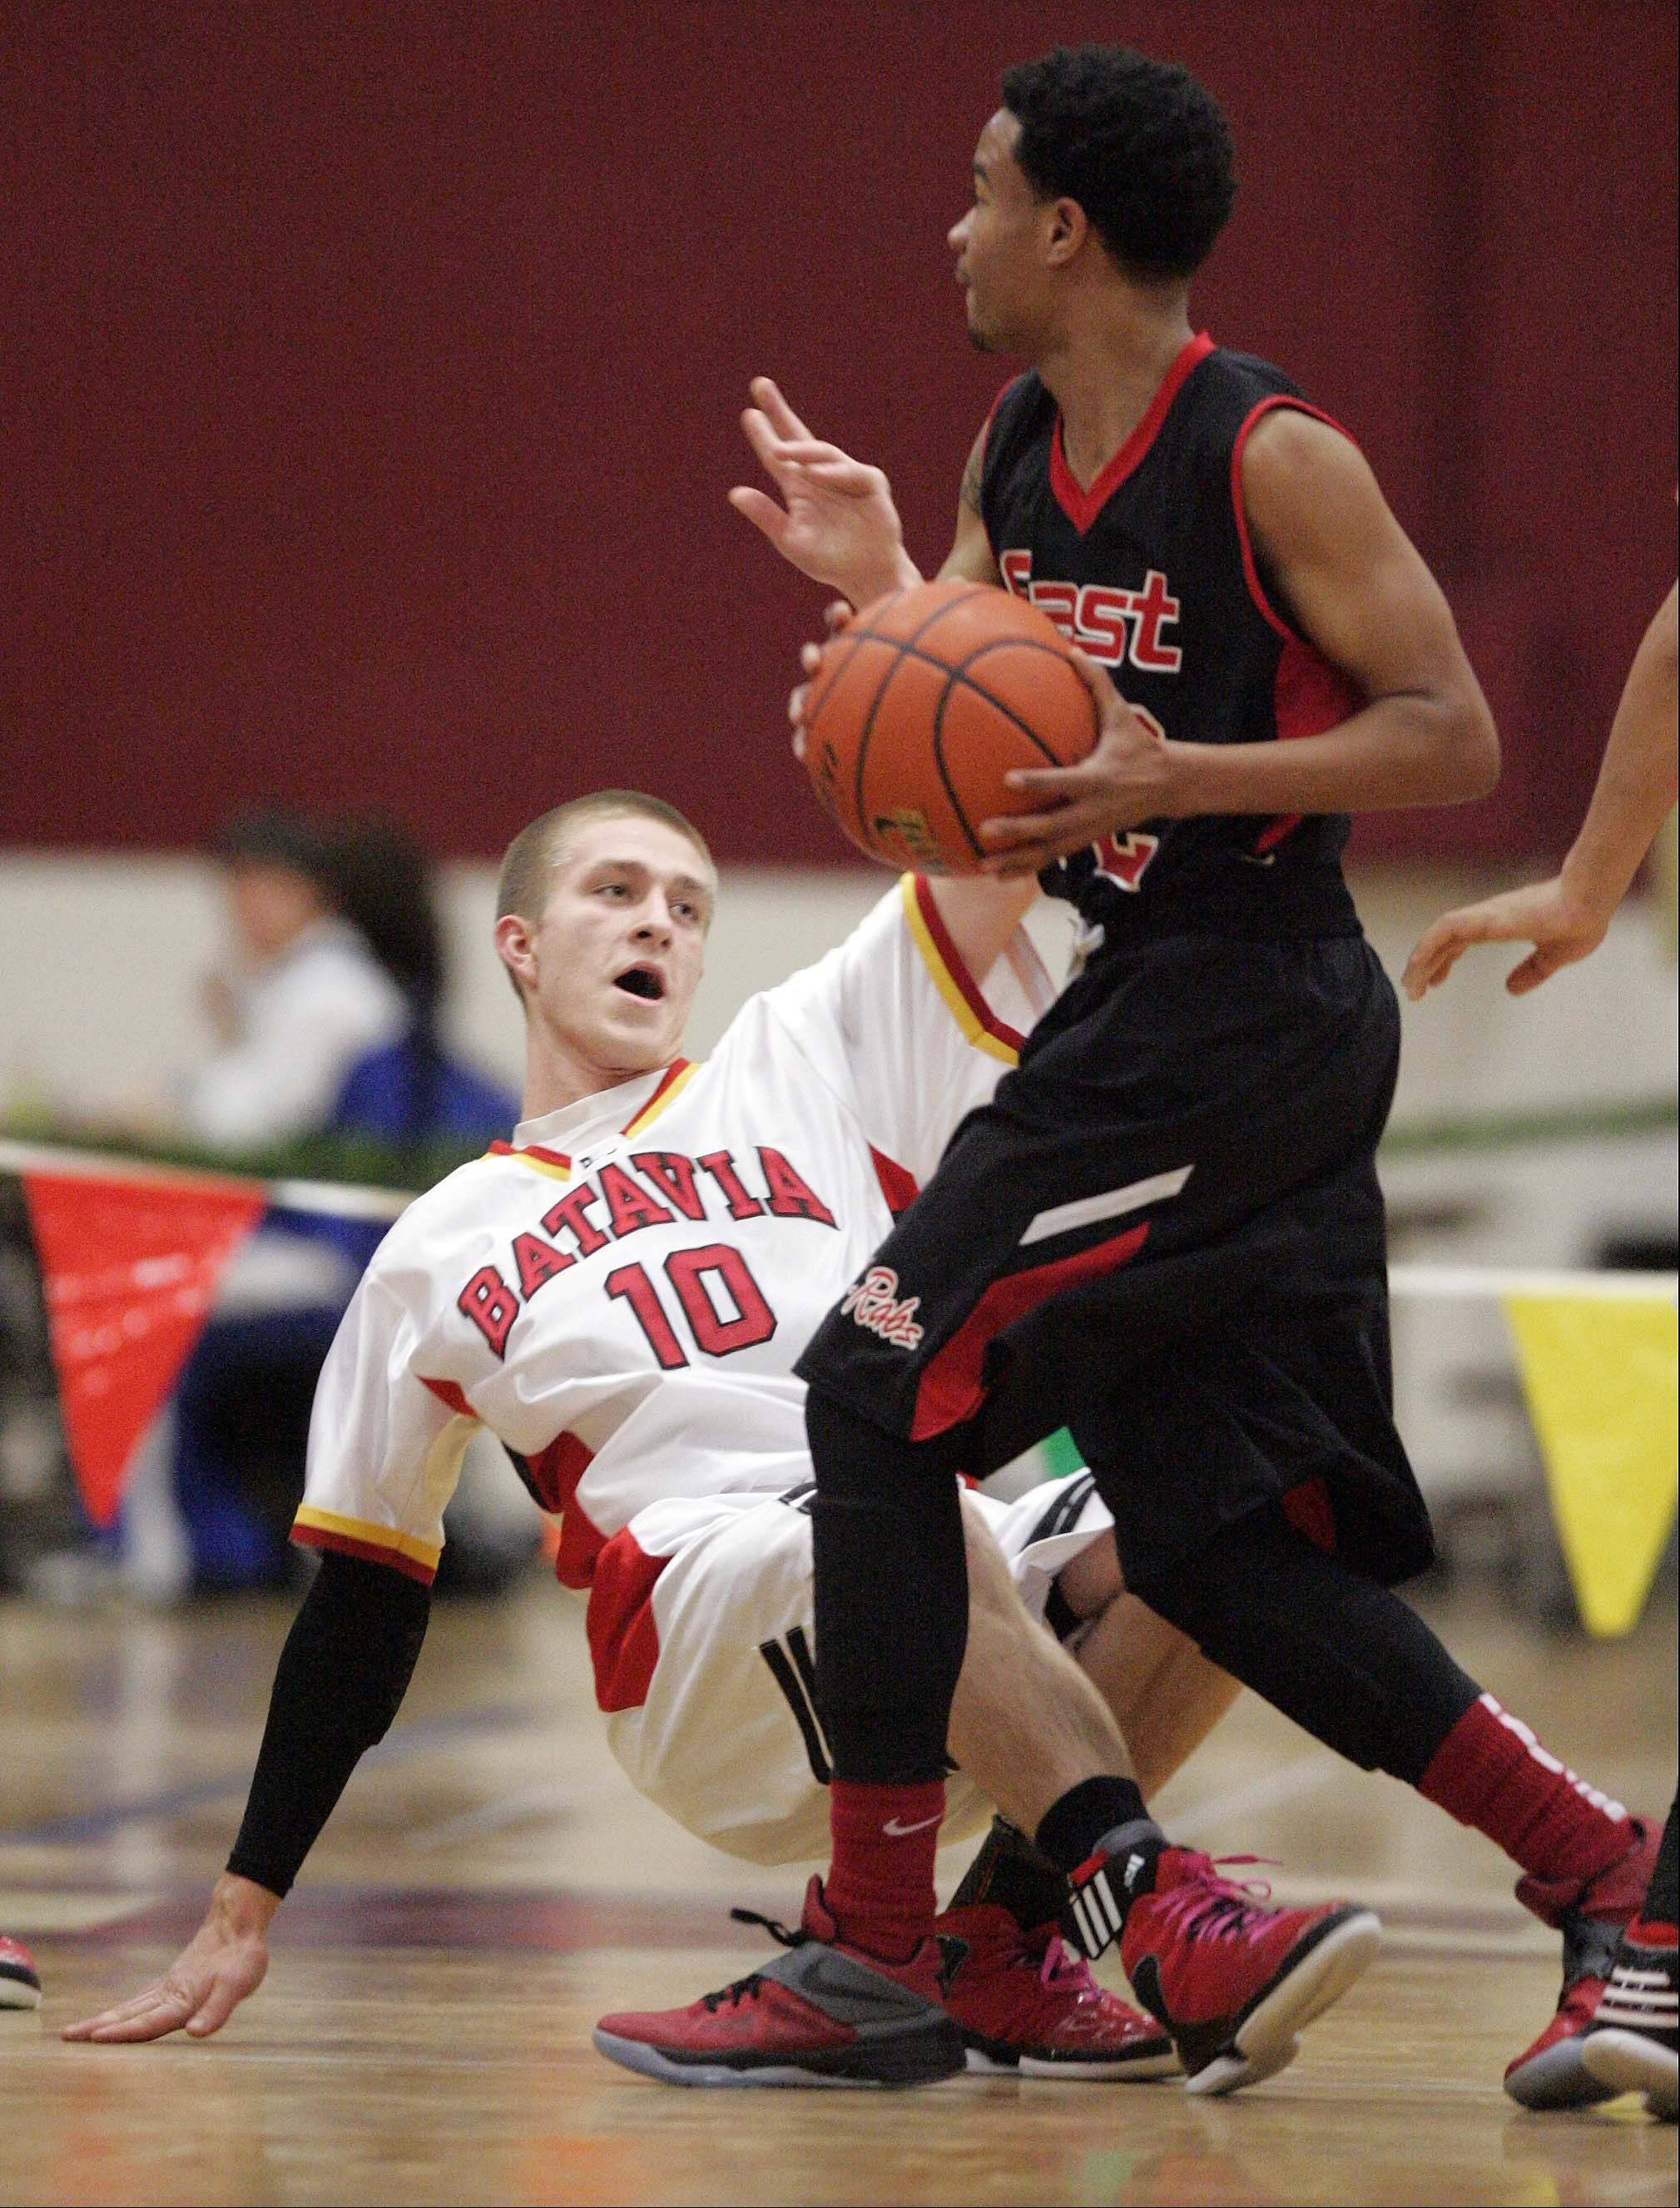 Images from Batavia vs Rockford East at the 38th Annual Elgin Boys Holiday Basketball Tournament Thursday December 27, 2012.